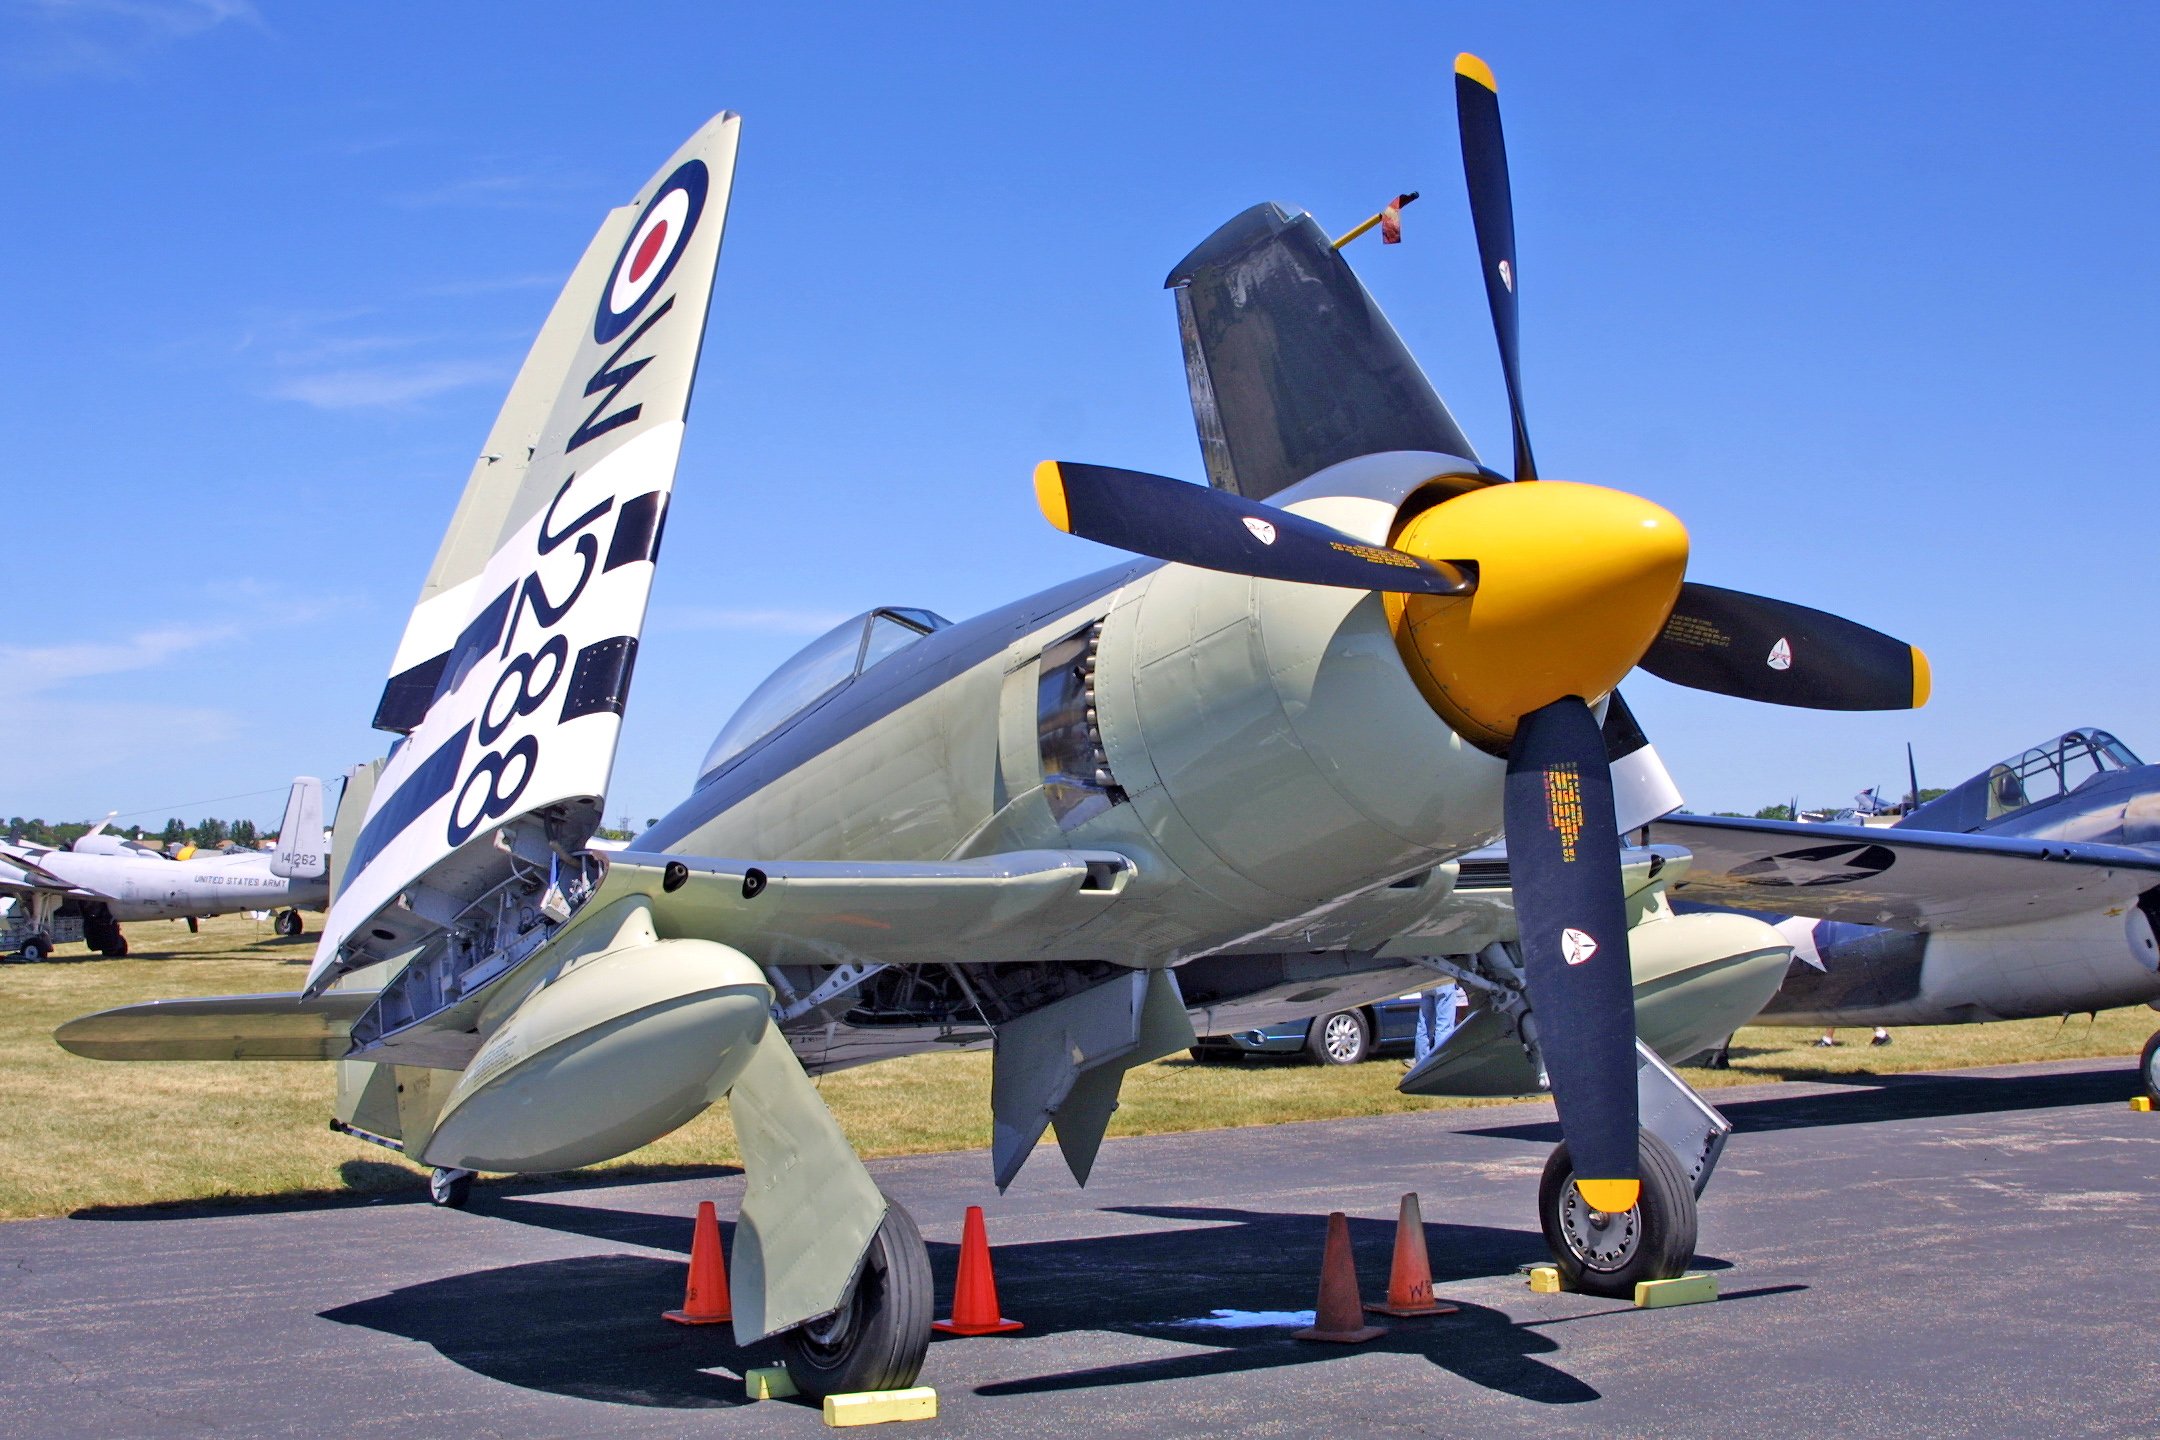 rc plane trainers with List Of Hawker Sea Fury Operators on Chloe Mafia Busts Out Tennis 5986835 additionally Chloe Mafia Busts Out Tennis 5986835 also Rc Servos in addition Details further FMS 980mm P 39 Airacobra Racing RC Plane PNP No Radio p 489.